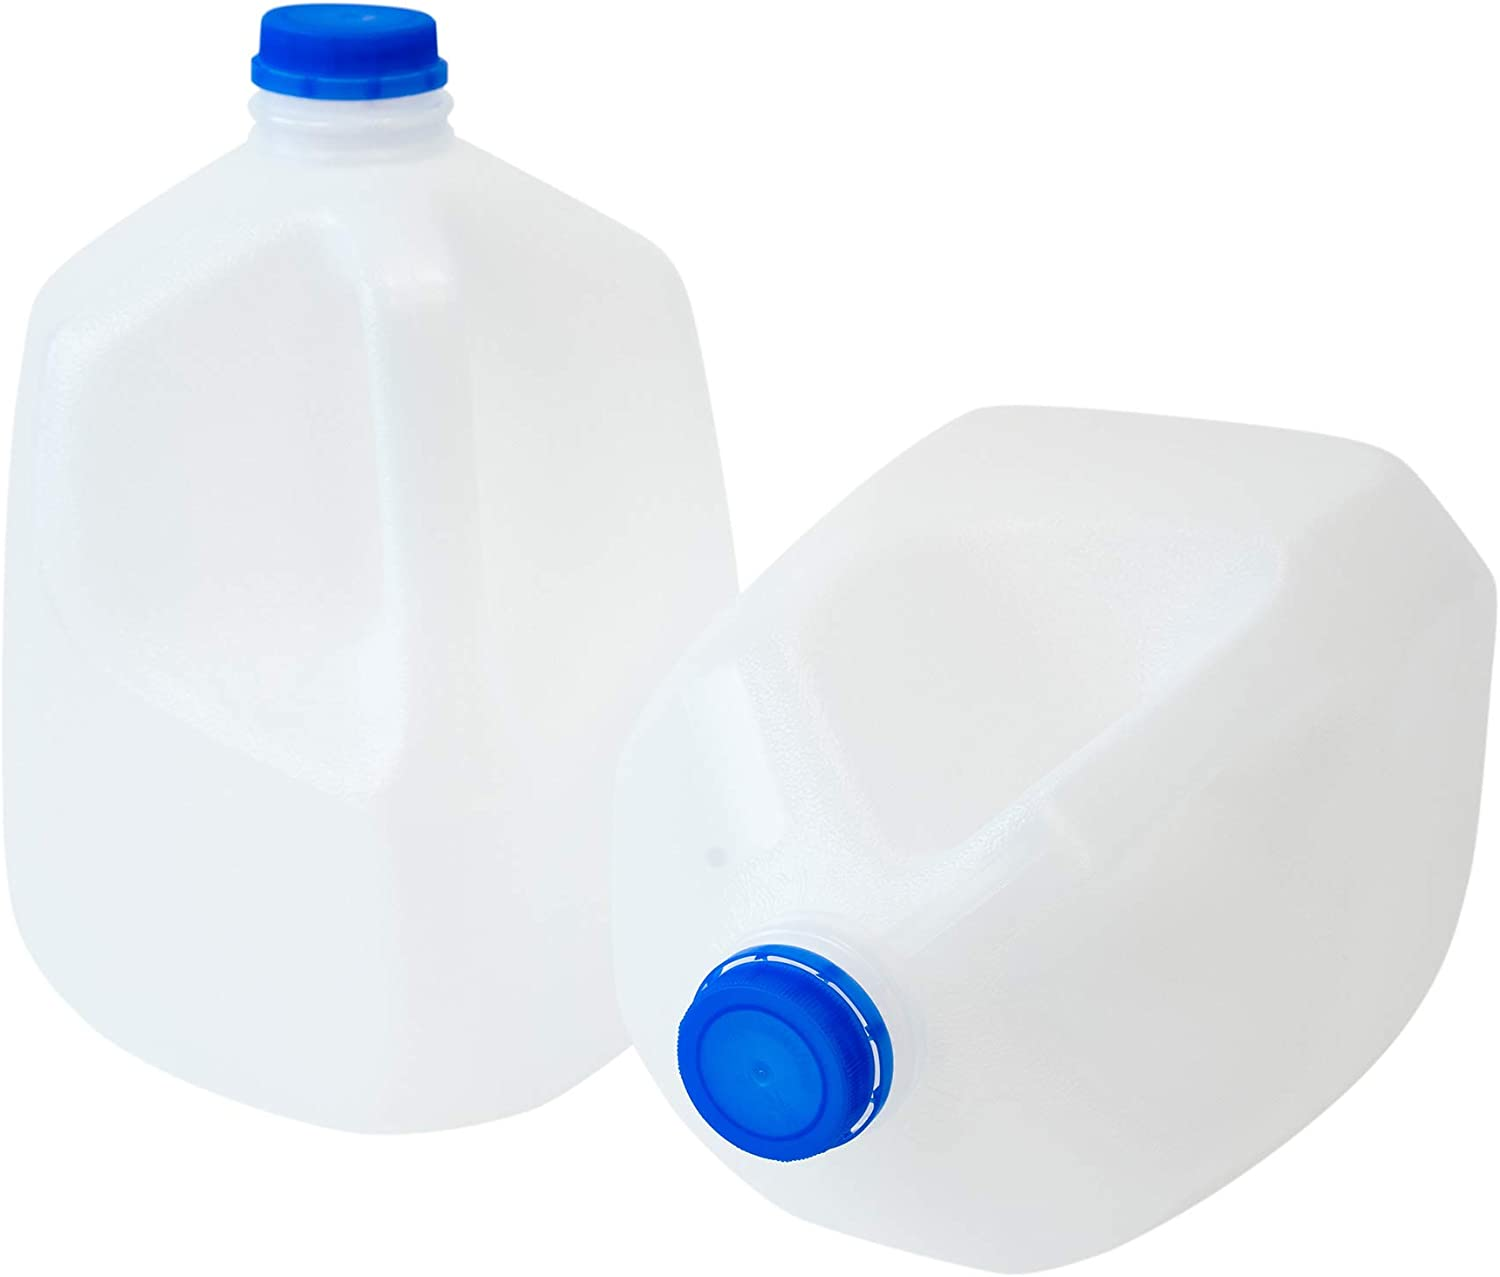 CSBD 1 Gallon Plastic Jug with Lid for Water, Milk, Juice or Liquids, 2 Pack, Reusable and Refillable BPA-Free Containers, Residential or Commercial Use, Made in the USA